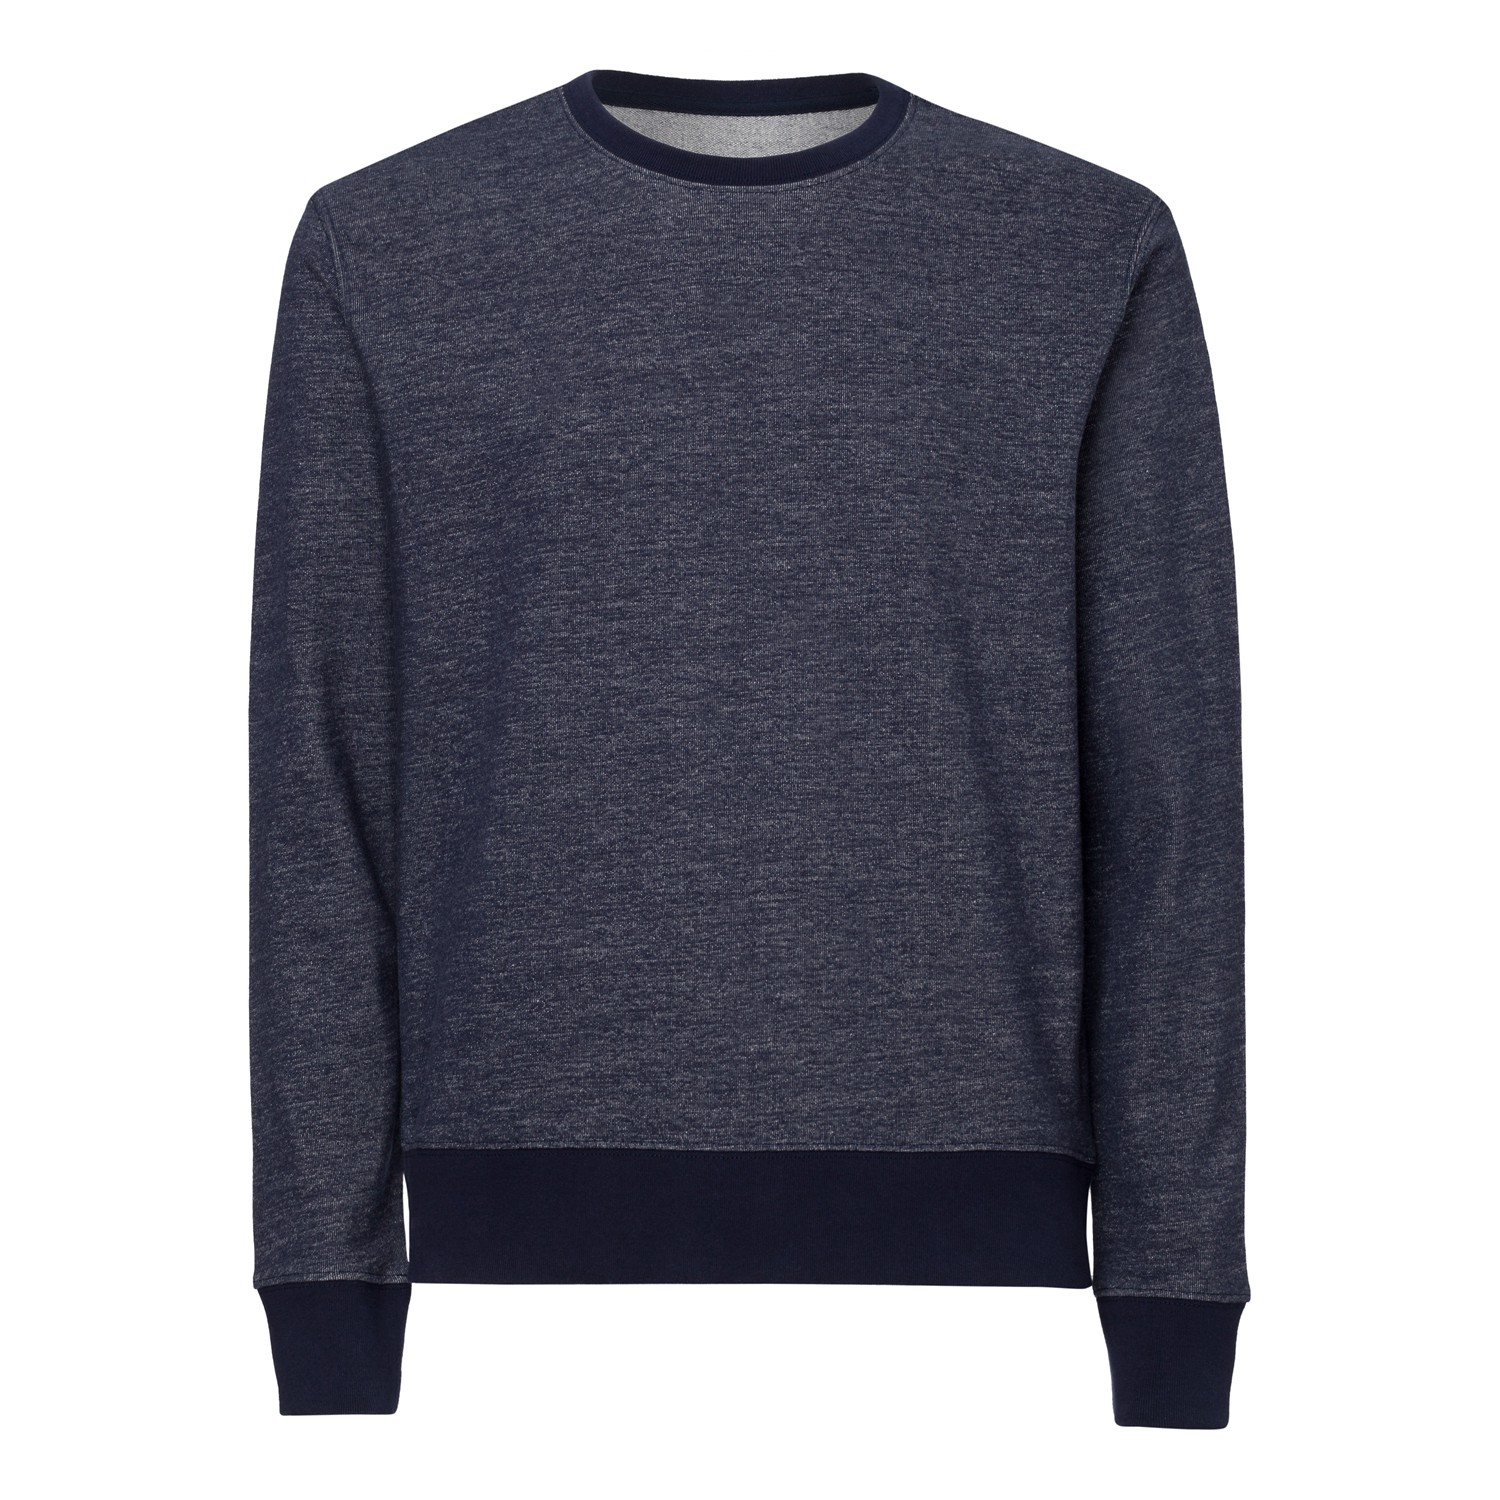 Herren Round Neck Sweatshirt french navy Bio & Fair